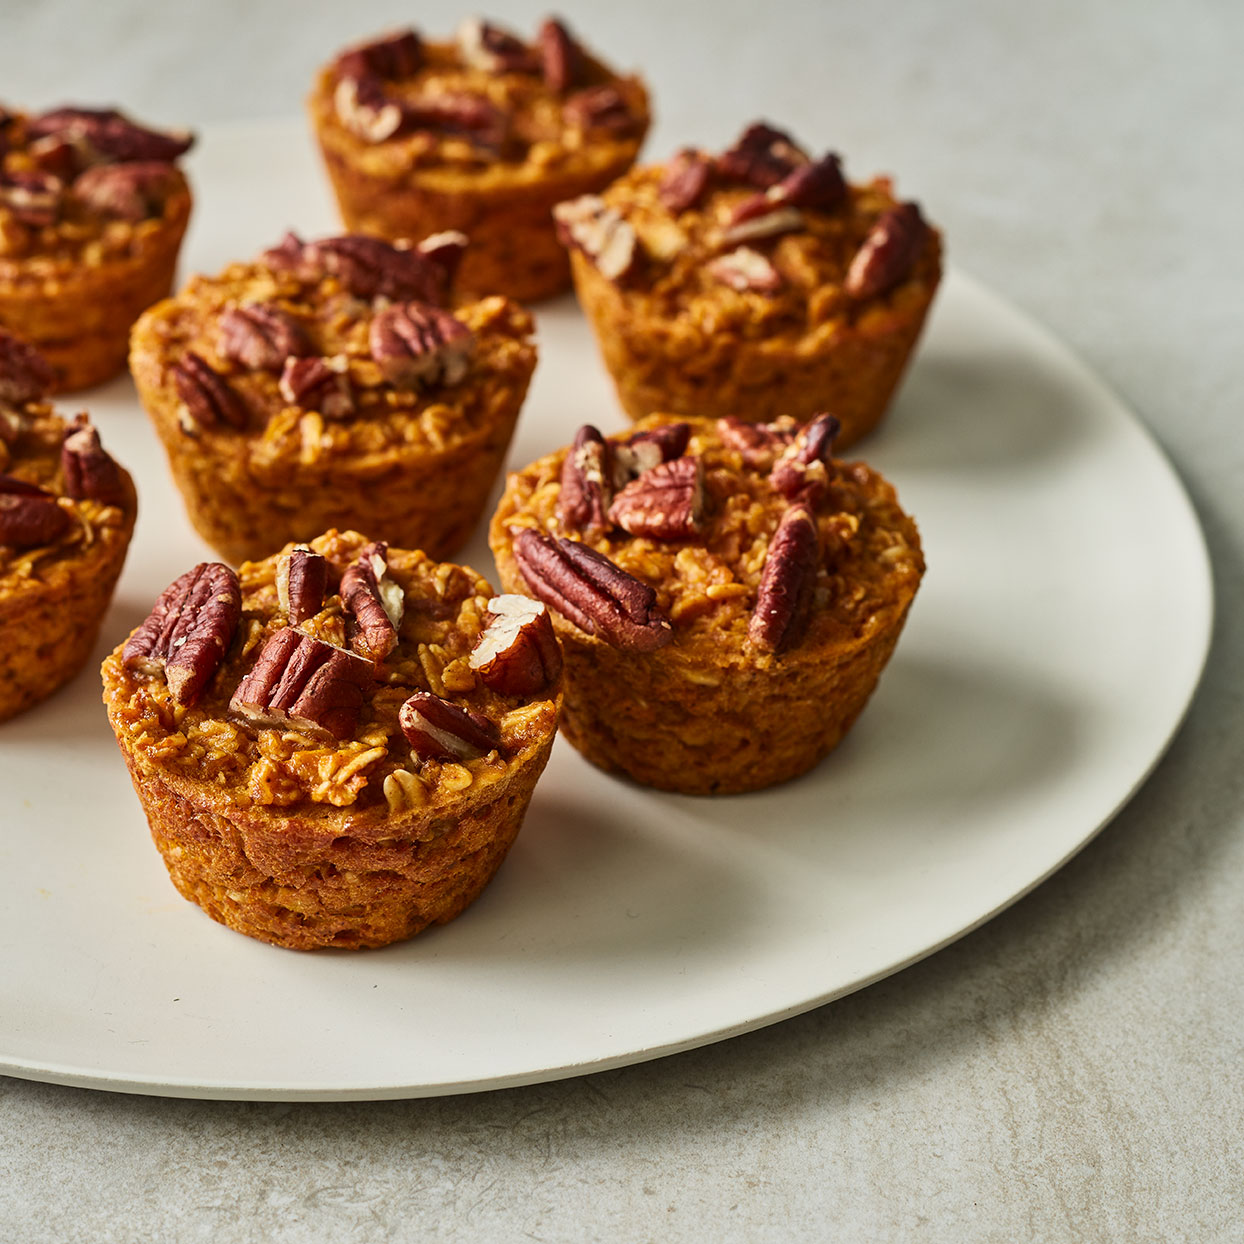 These healthy pumpkin-oatmeal muffins will get you in the mood for fall. Sprinkling the muffins with pecans adds a nutty crunch to every bite. Serve them for breakfast or as a grab-and-go snack.